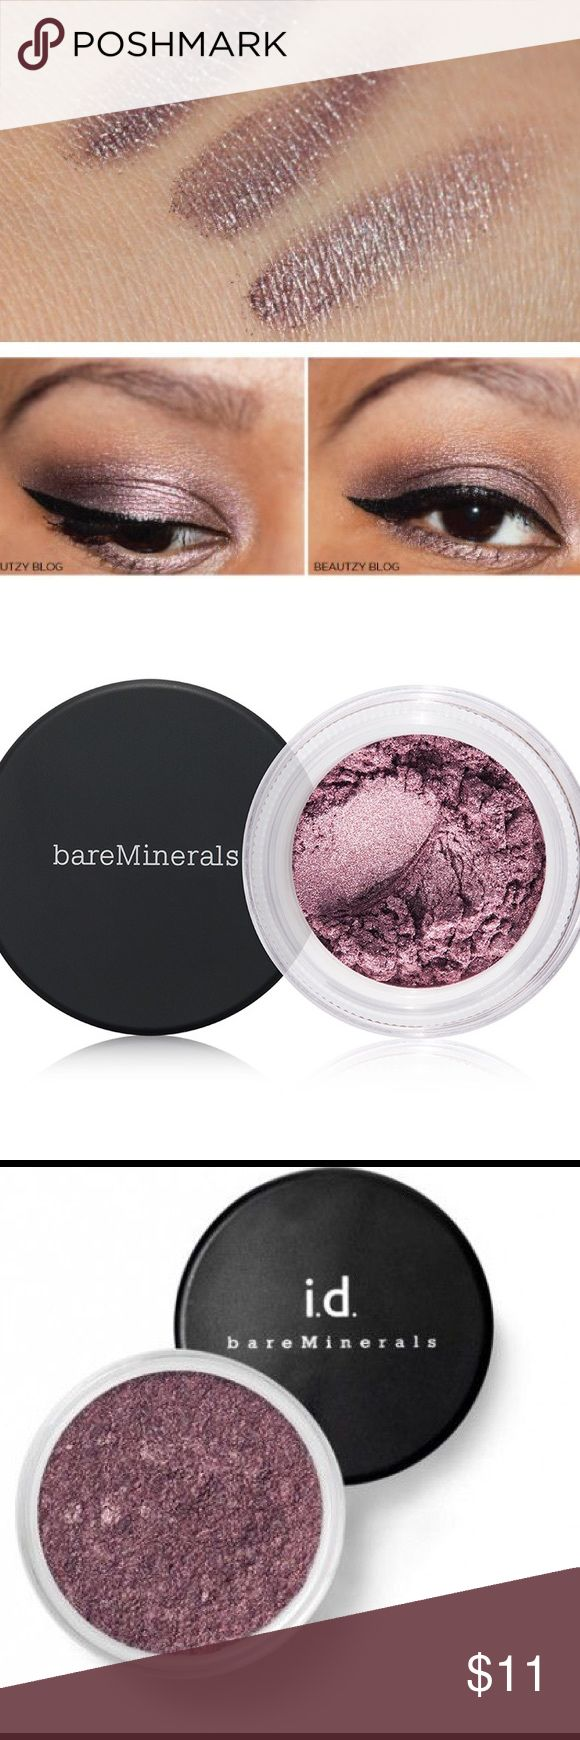 Mineral eyeshadow Bare Minerals eyeshadow in Devotion. This is a really pretty and shimmery purple/maroon shadow. Blends very well. A must have for any makeup lover. bareMinerals Makeup Eyeshadow